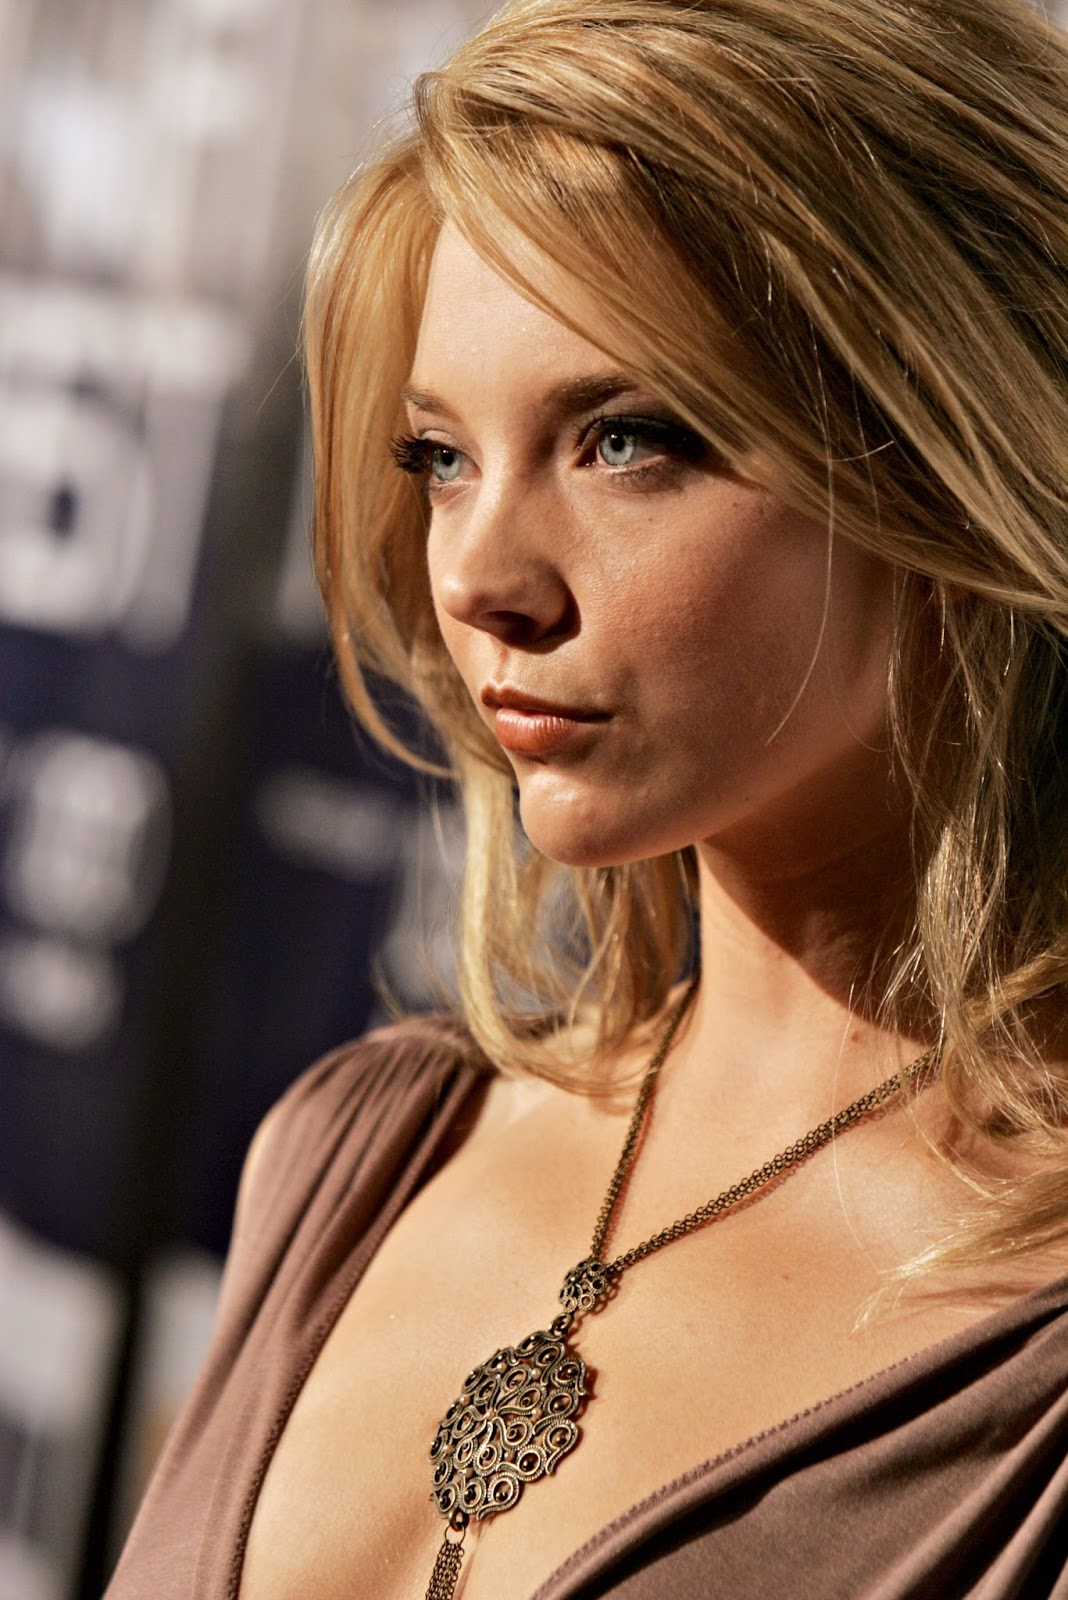 Natalie Dormer Hot Actress Game of Thrones HD Wallpapers ...